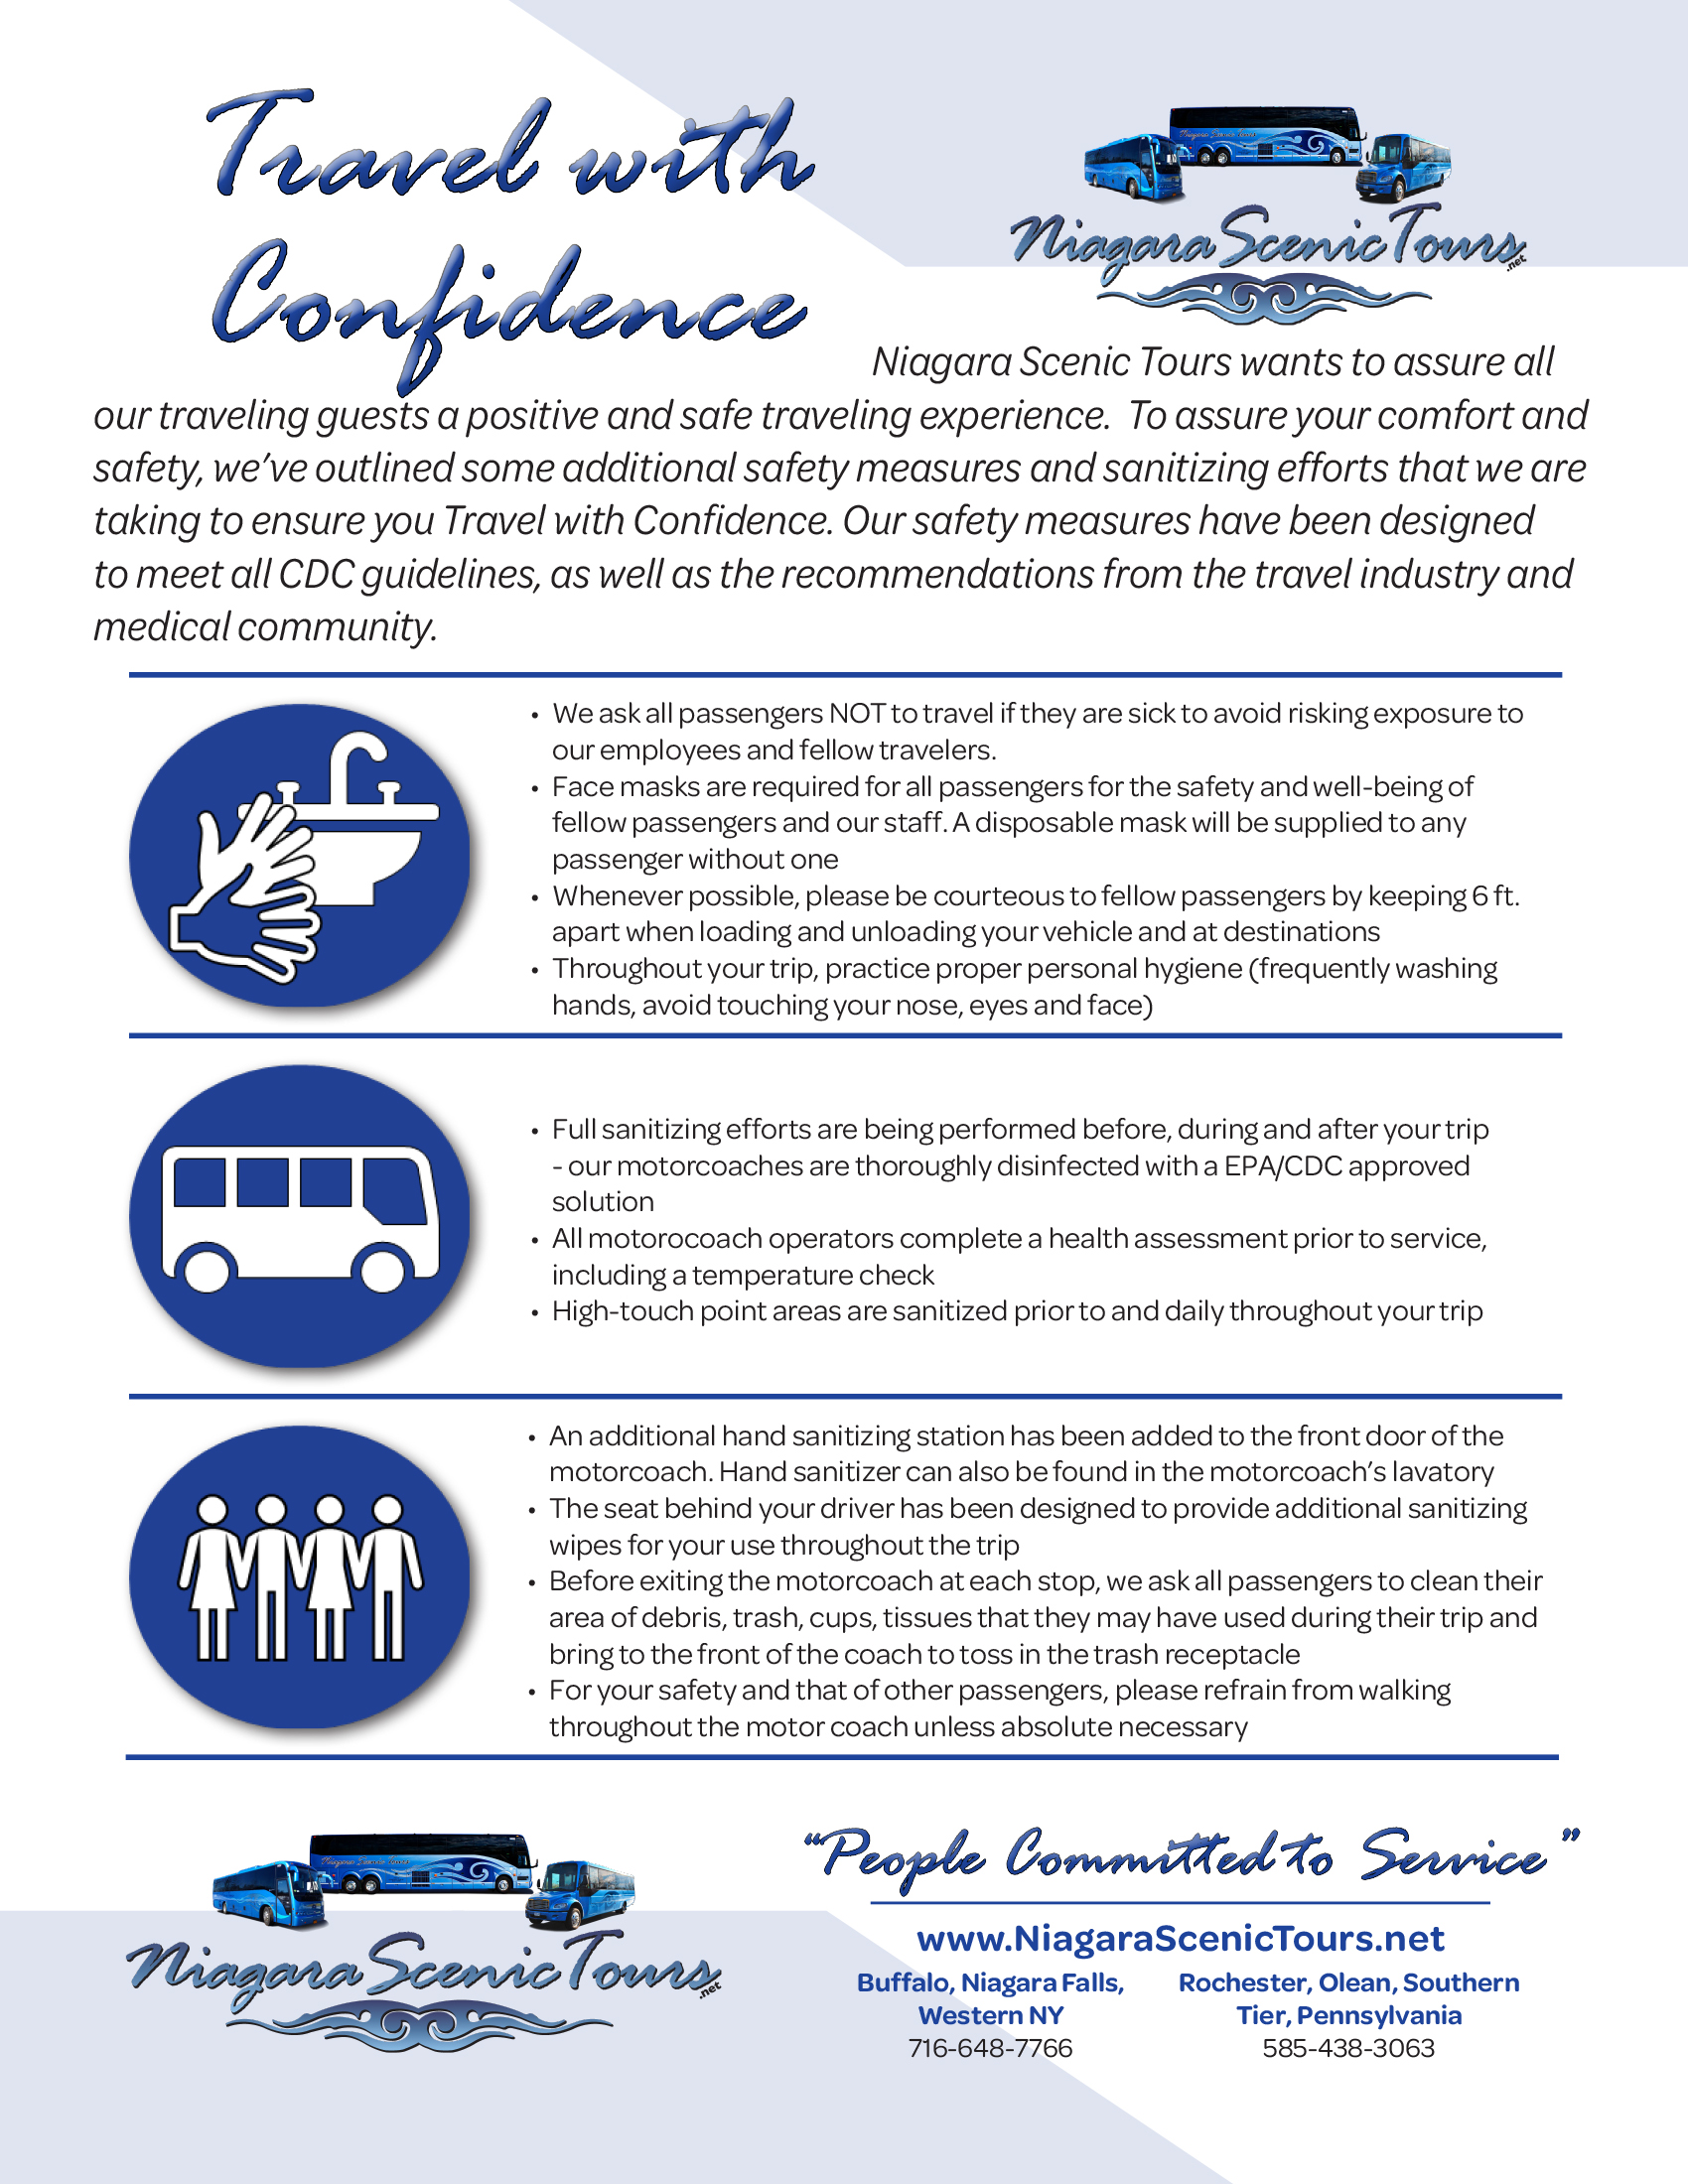 Travel with Confidence Flyer